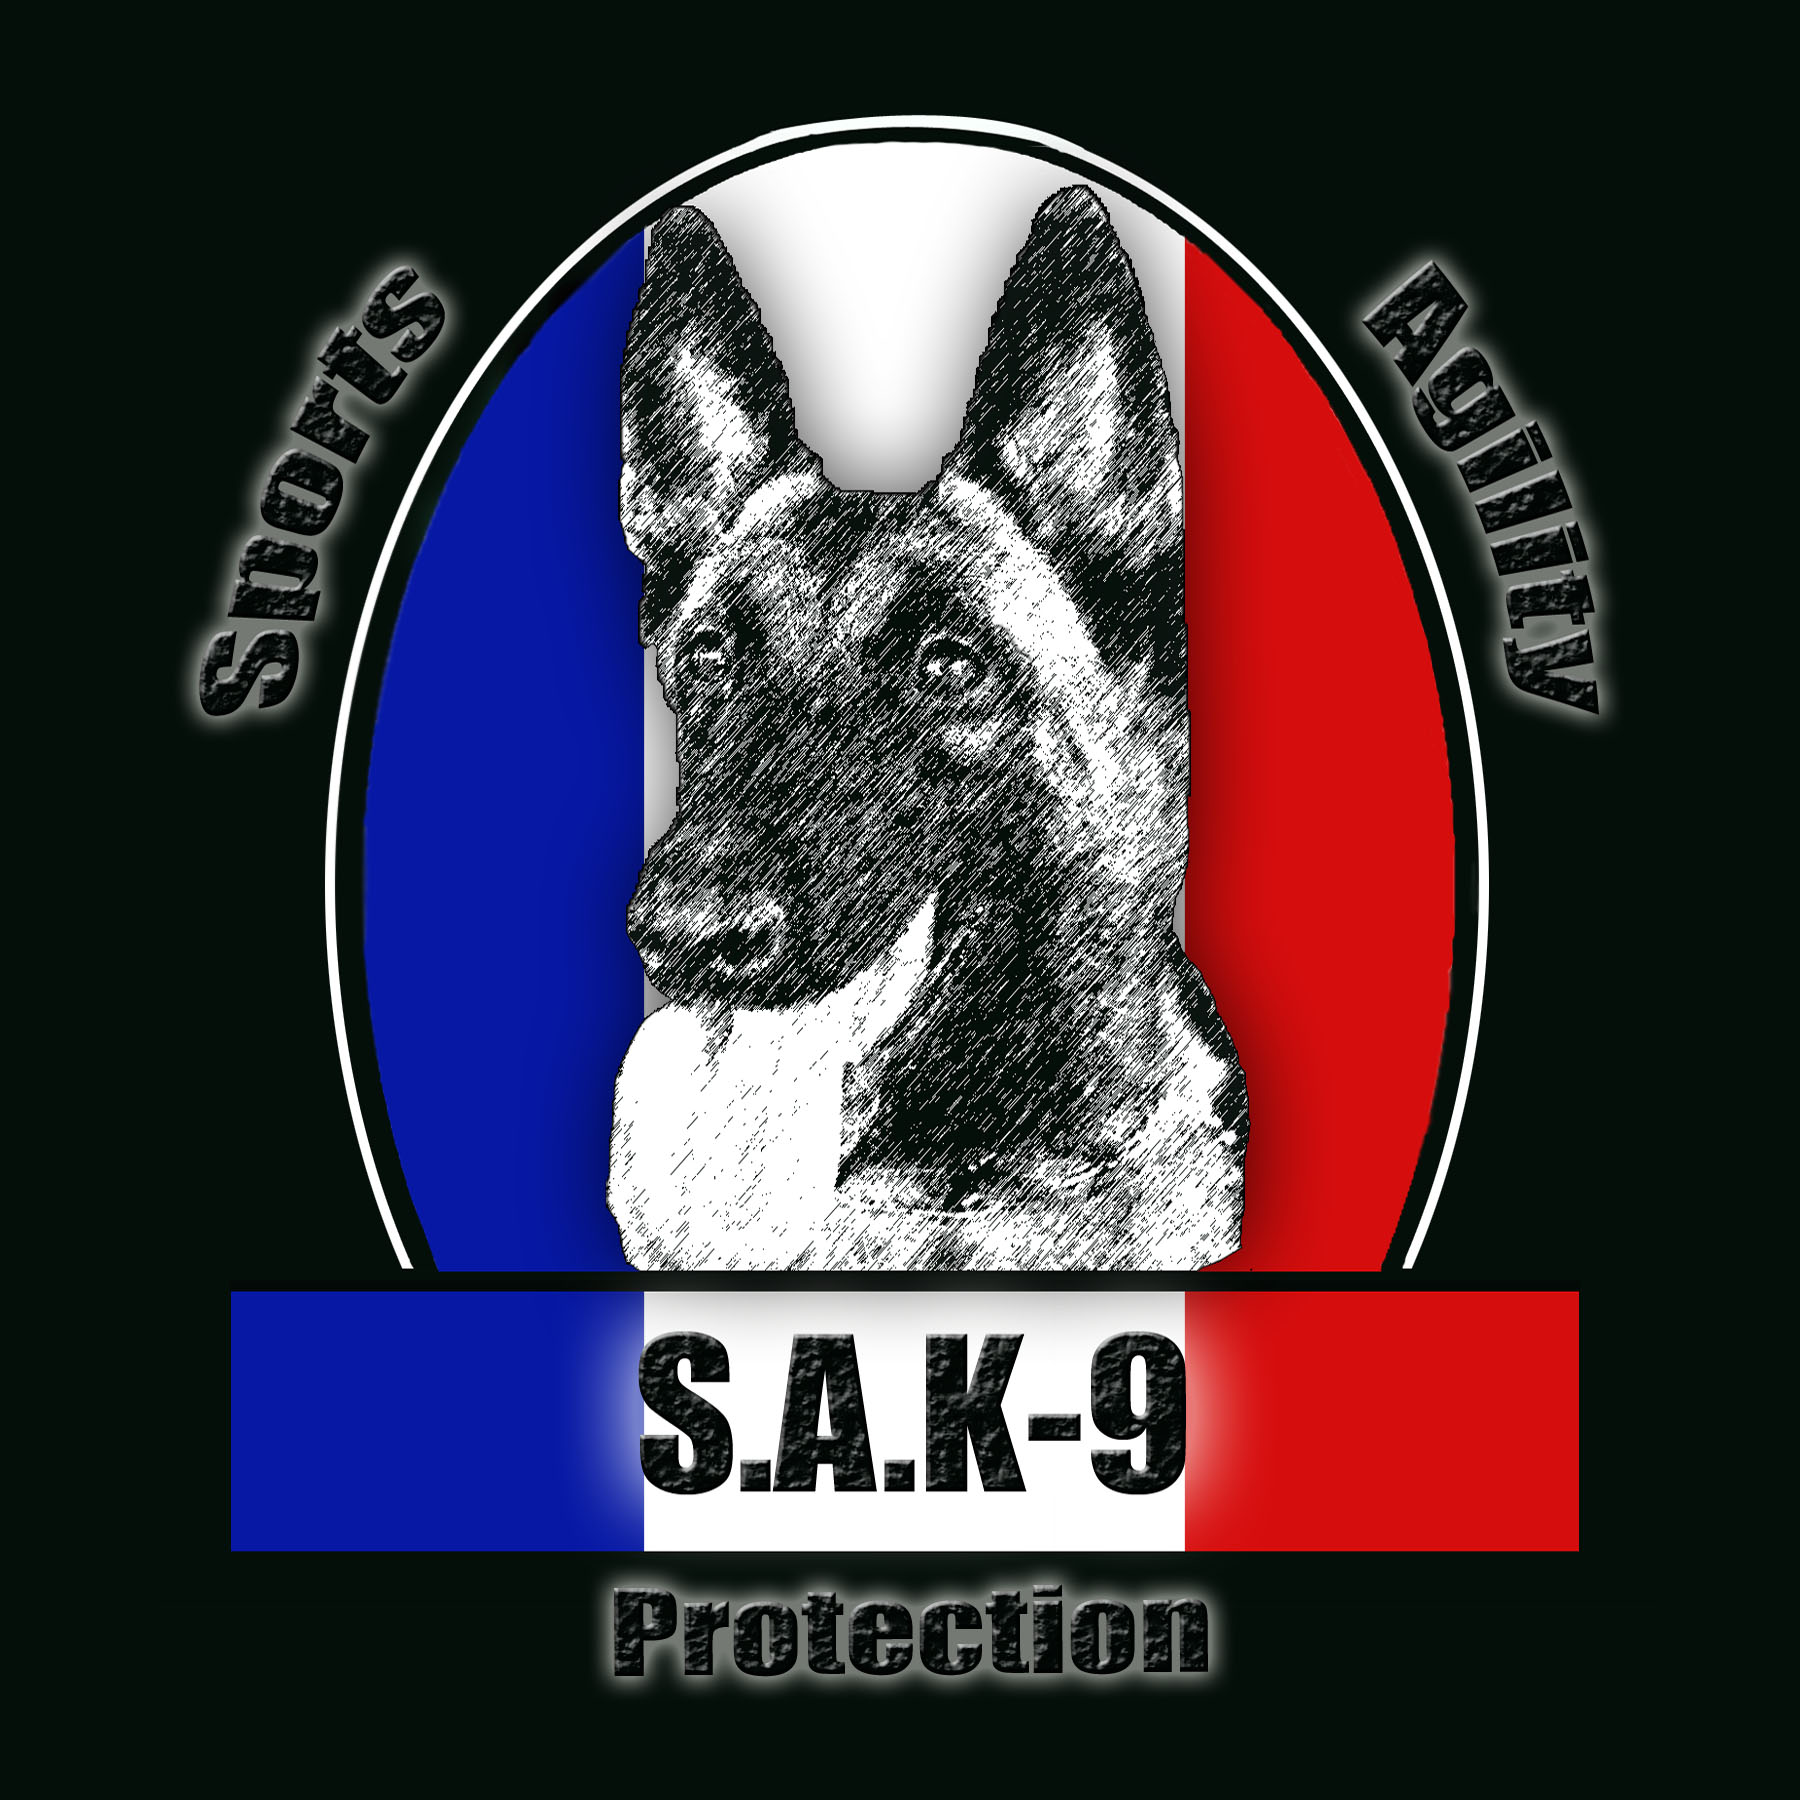 sak-9 protection dog